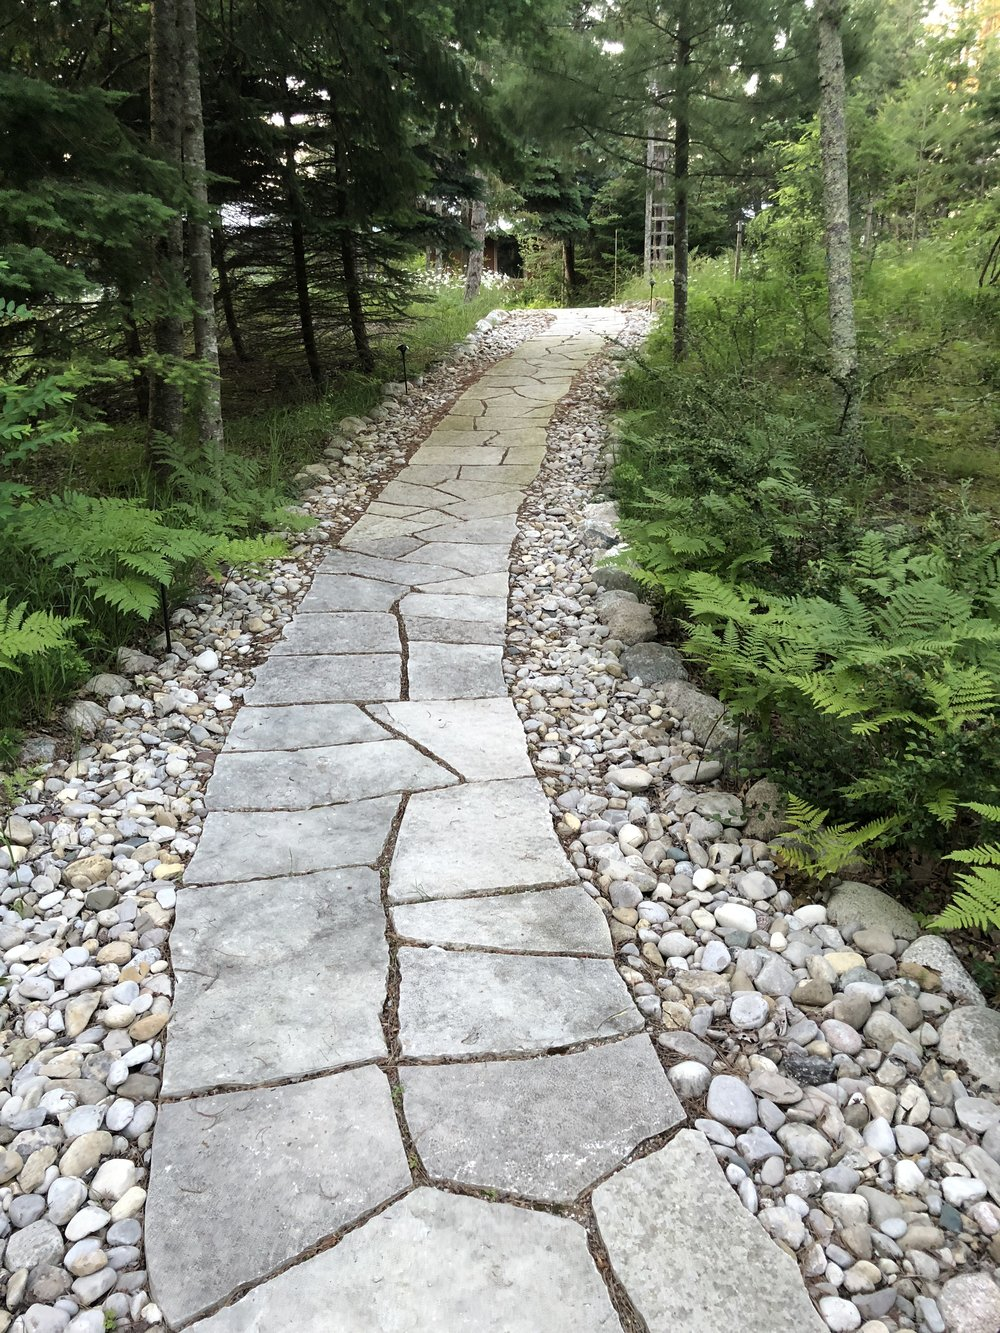 A beautifully hand-tooled stone path with lake-tumbled stone borders creates a beautiful entry path from parking to this home's entry.